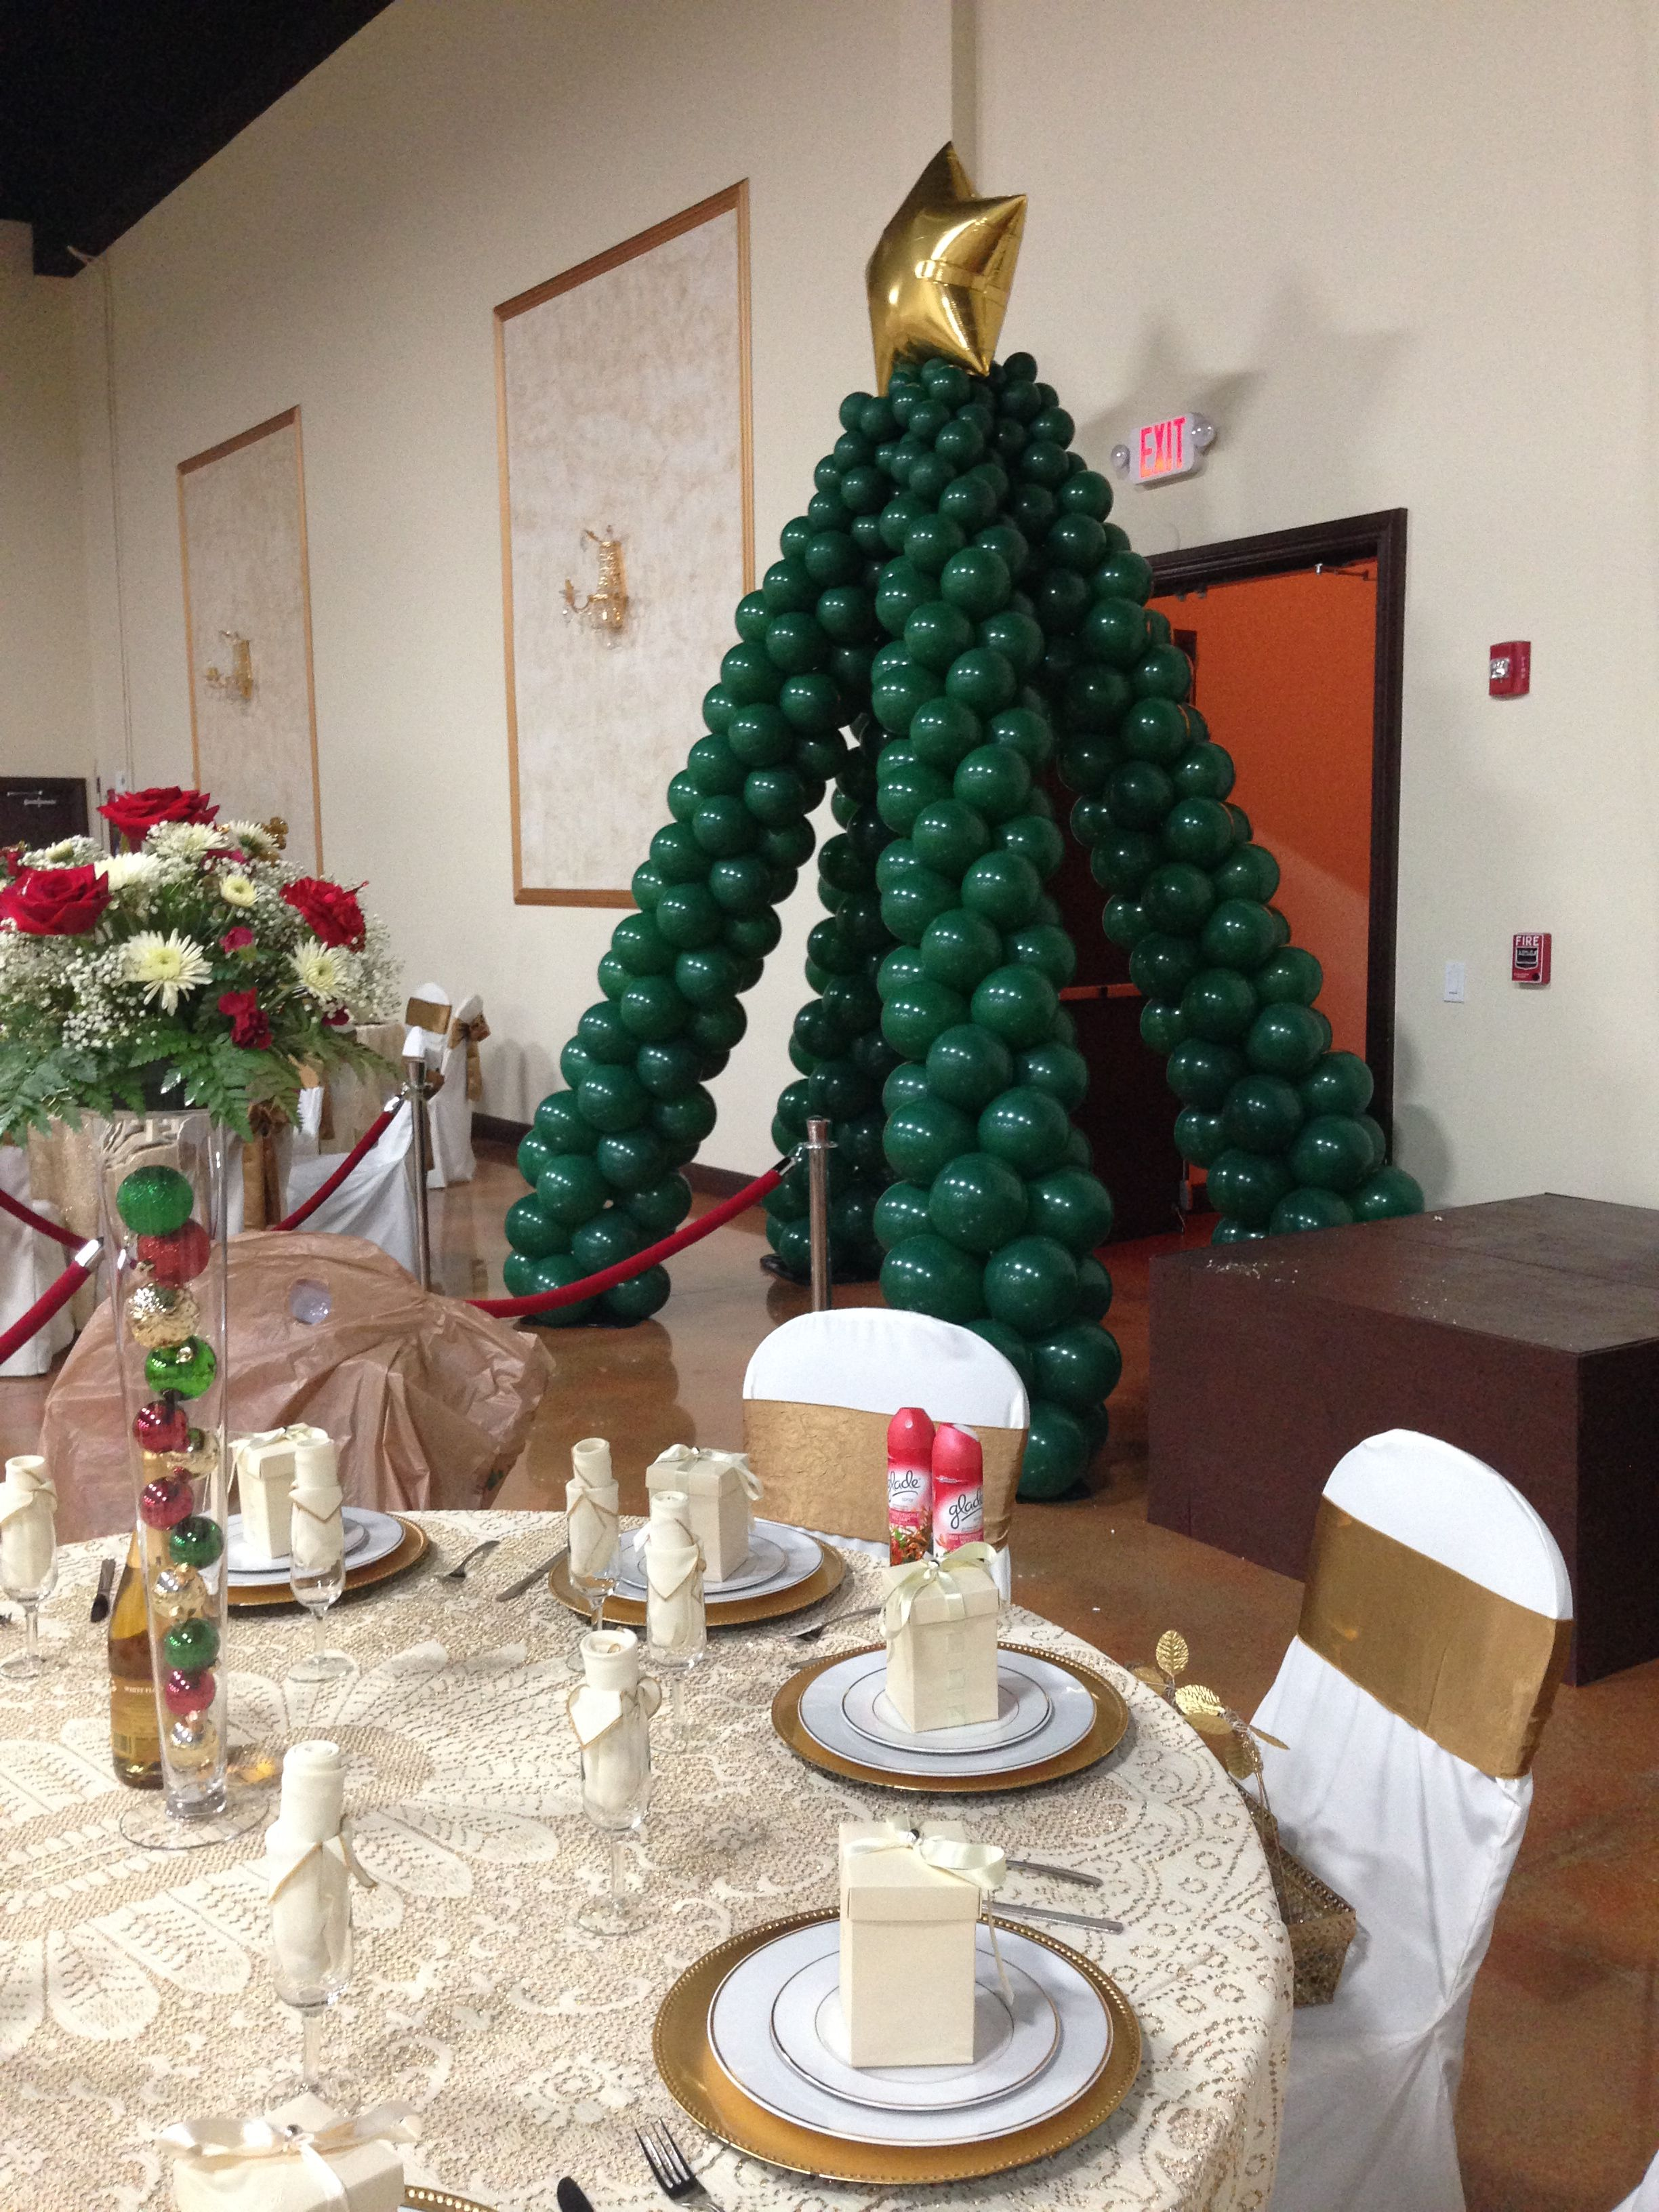 Pin By Liz Smith On Crafty Things Diy Christmas Party Decorations